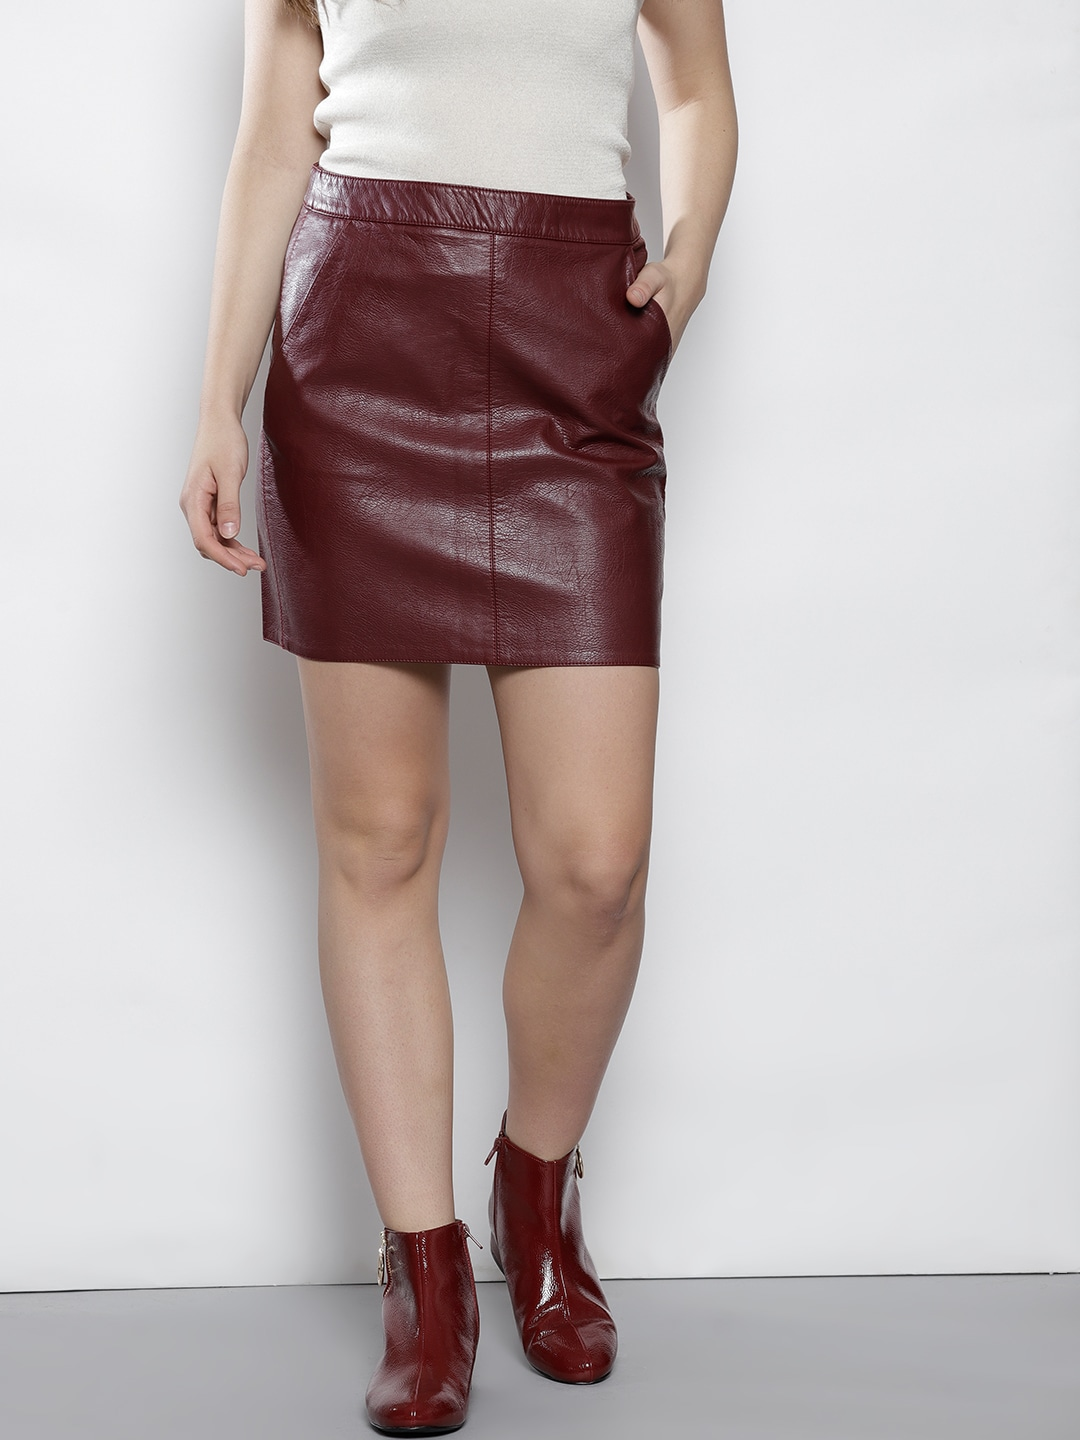 6d8a32bb6b1 Buy FOREVER 21 Dark Green Faux Leather Overlapping Mini Skirt ...